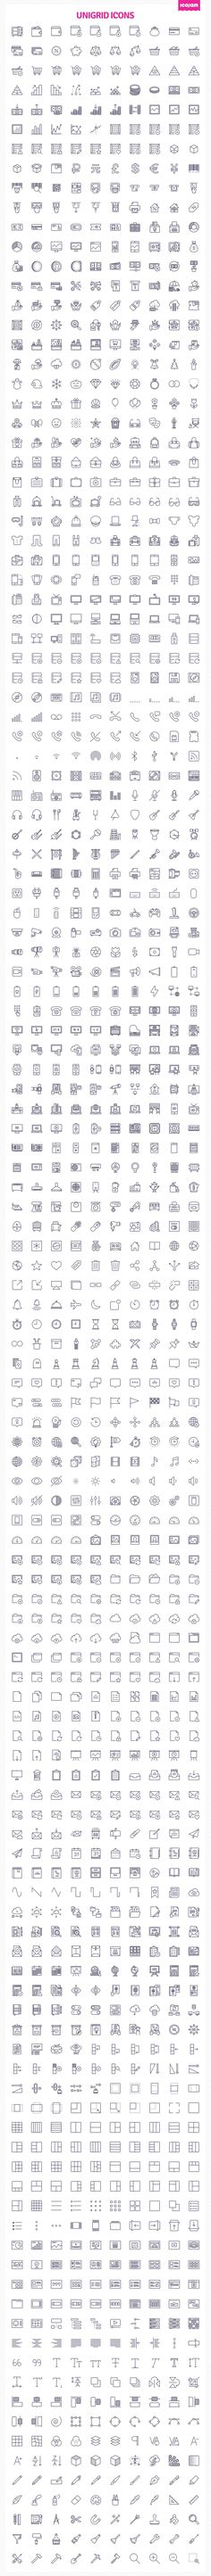 3000 Unigrid icons by Icojam on @creativemarket